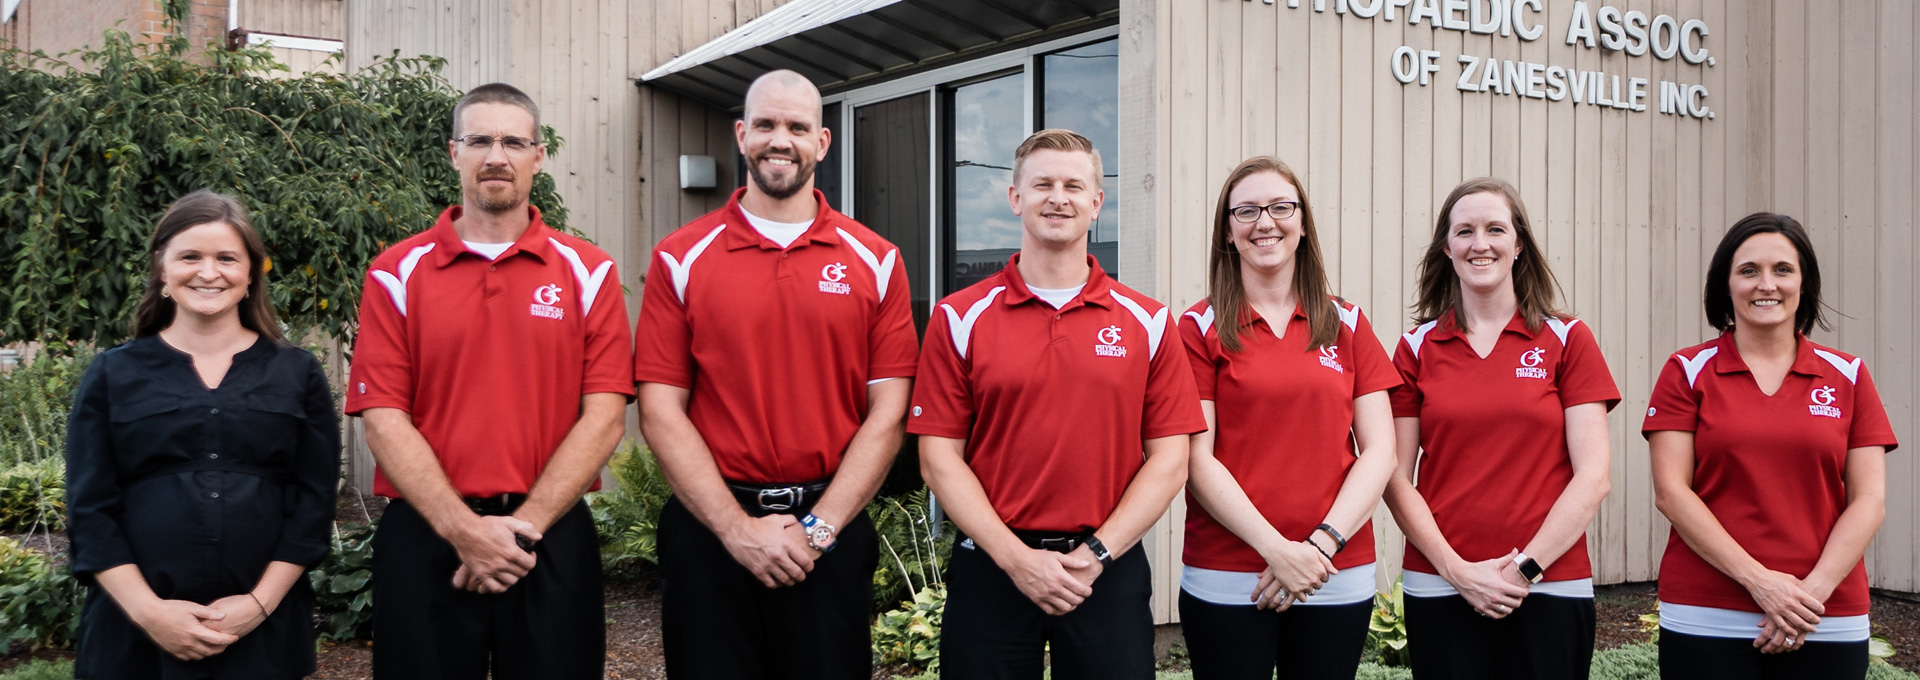 Orthopaedic-Associates-Zanesville-Ohio-Physical-Therapy-Team